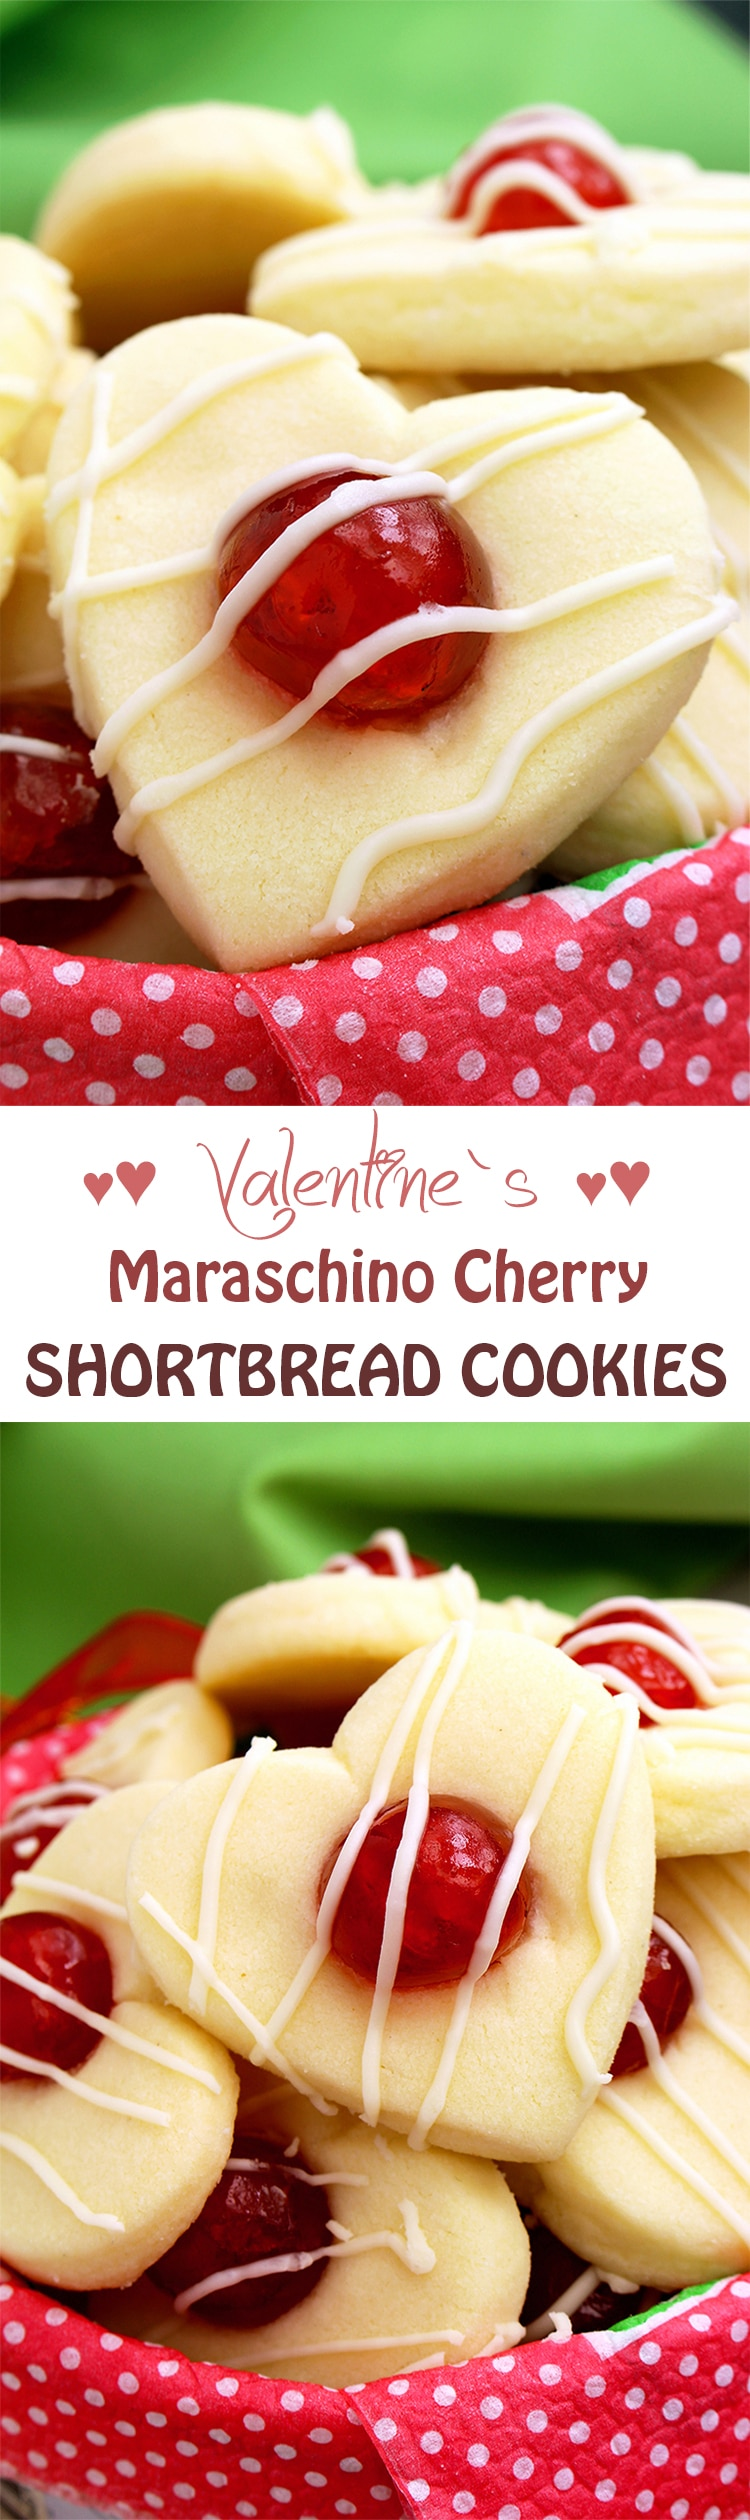 Untitled-150 Valentine's Maraschino Cherry Shortbread Cookies